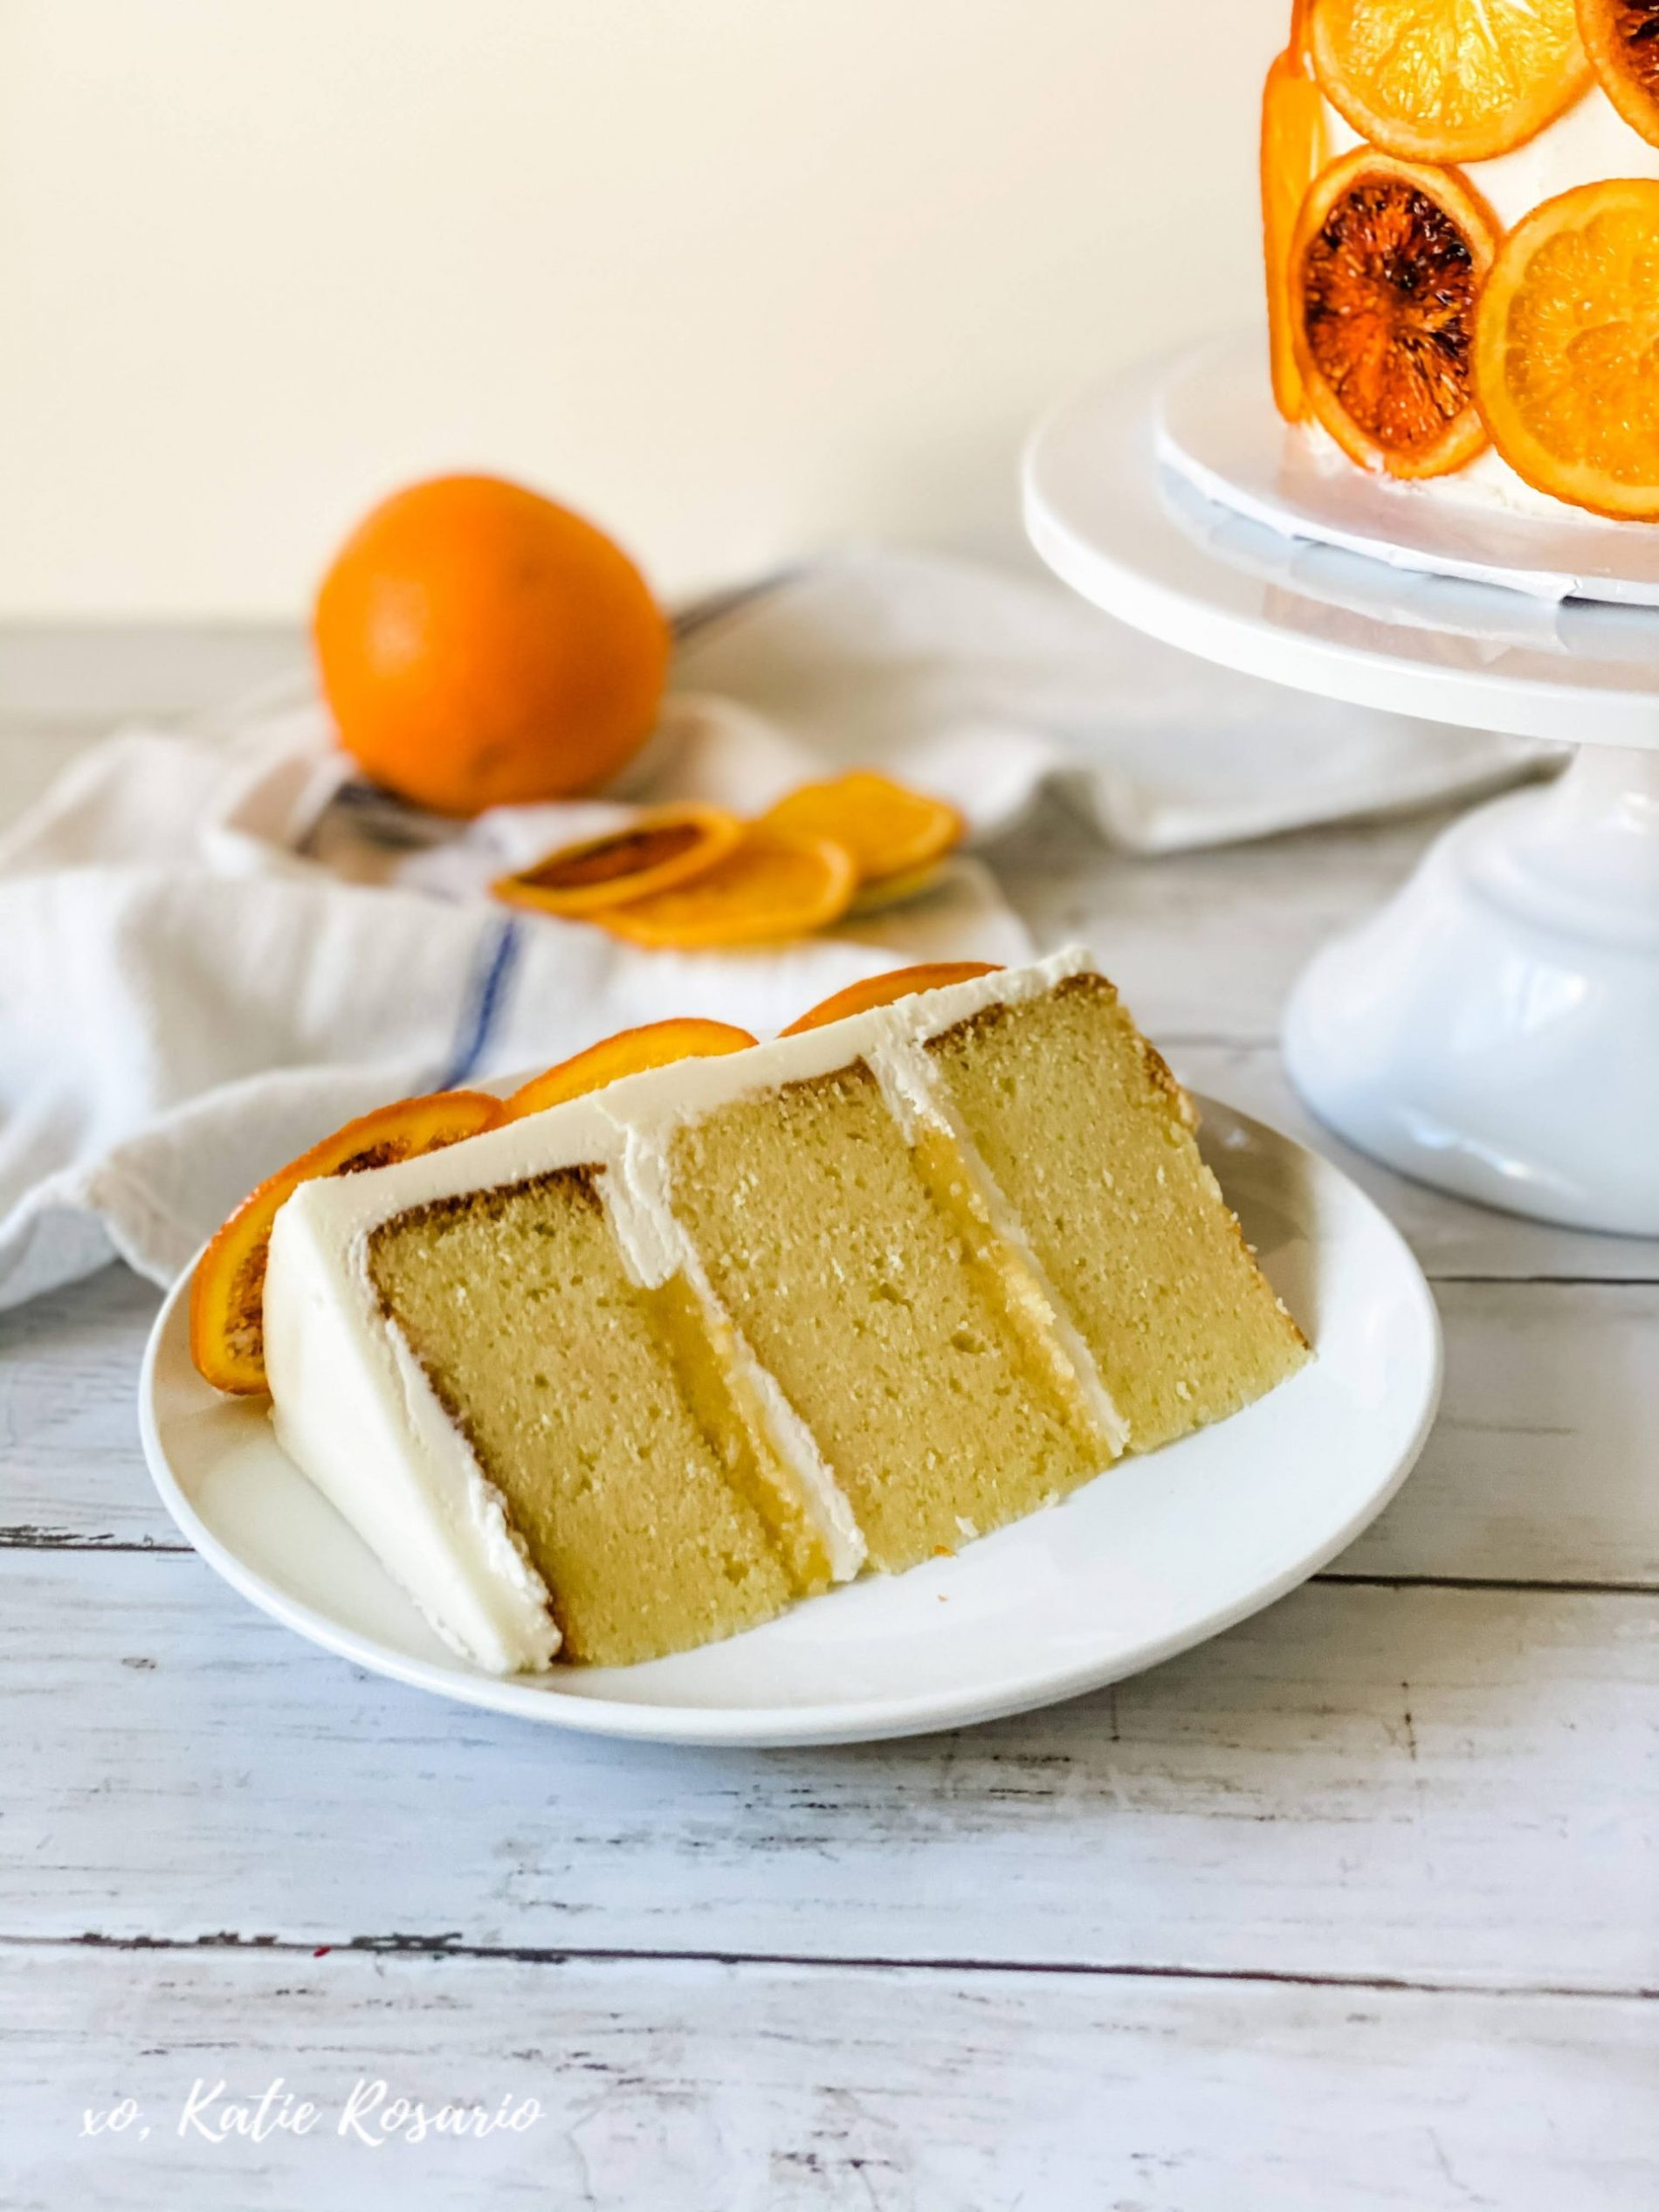 Looking to make something tasty with all that citrus? This Winter Citrus Cake is full of flavor, and something everyone will love to eat. This Winter Citrus cake is made with almond orange cake, grapefruit curd, navel orange buttercream, and homemade candied blood oranges. I'll show you how to make all these different citrus flavors incredible in this Winter Citrus Cake. #xokatierosario #katierosariocake #wintercakeideas #citruscake #cakedecoratingtips